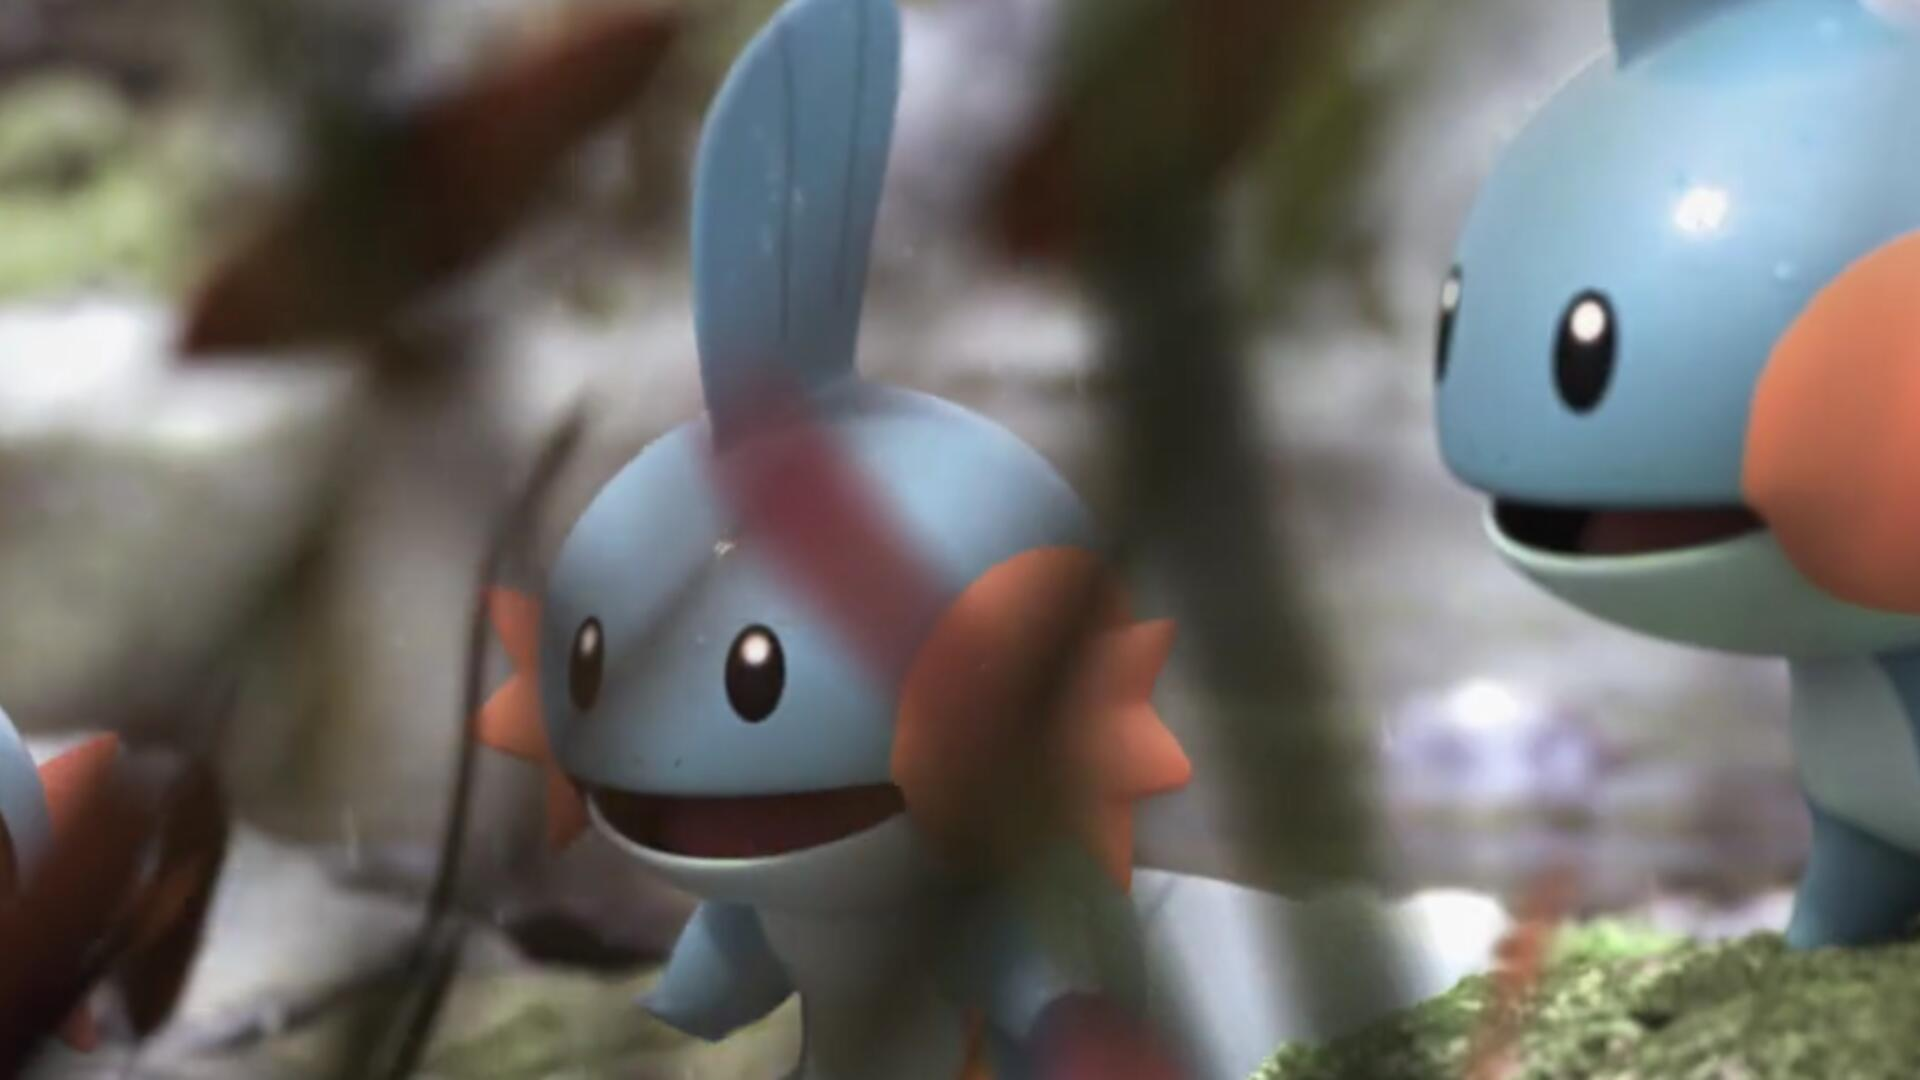 Pokemon Go Releases Gorgeous, Nature Documentary-Style Trailer Narrated by Stephen Fry